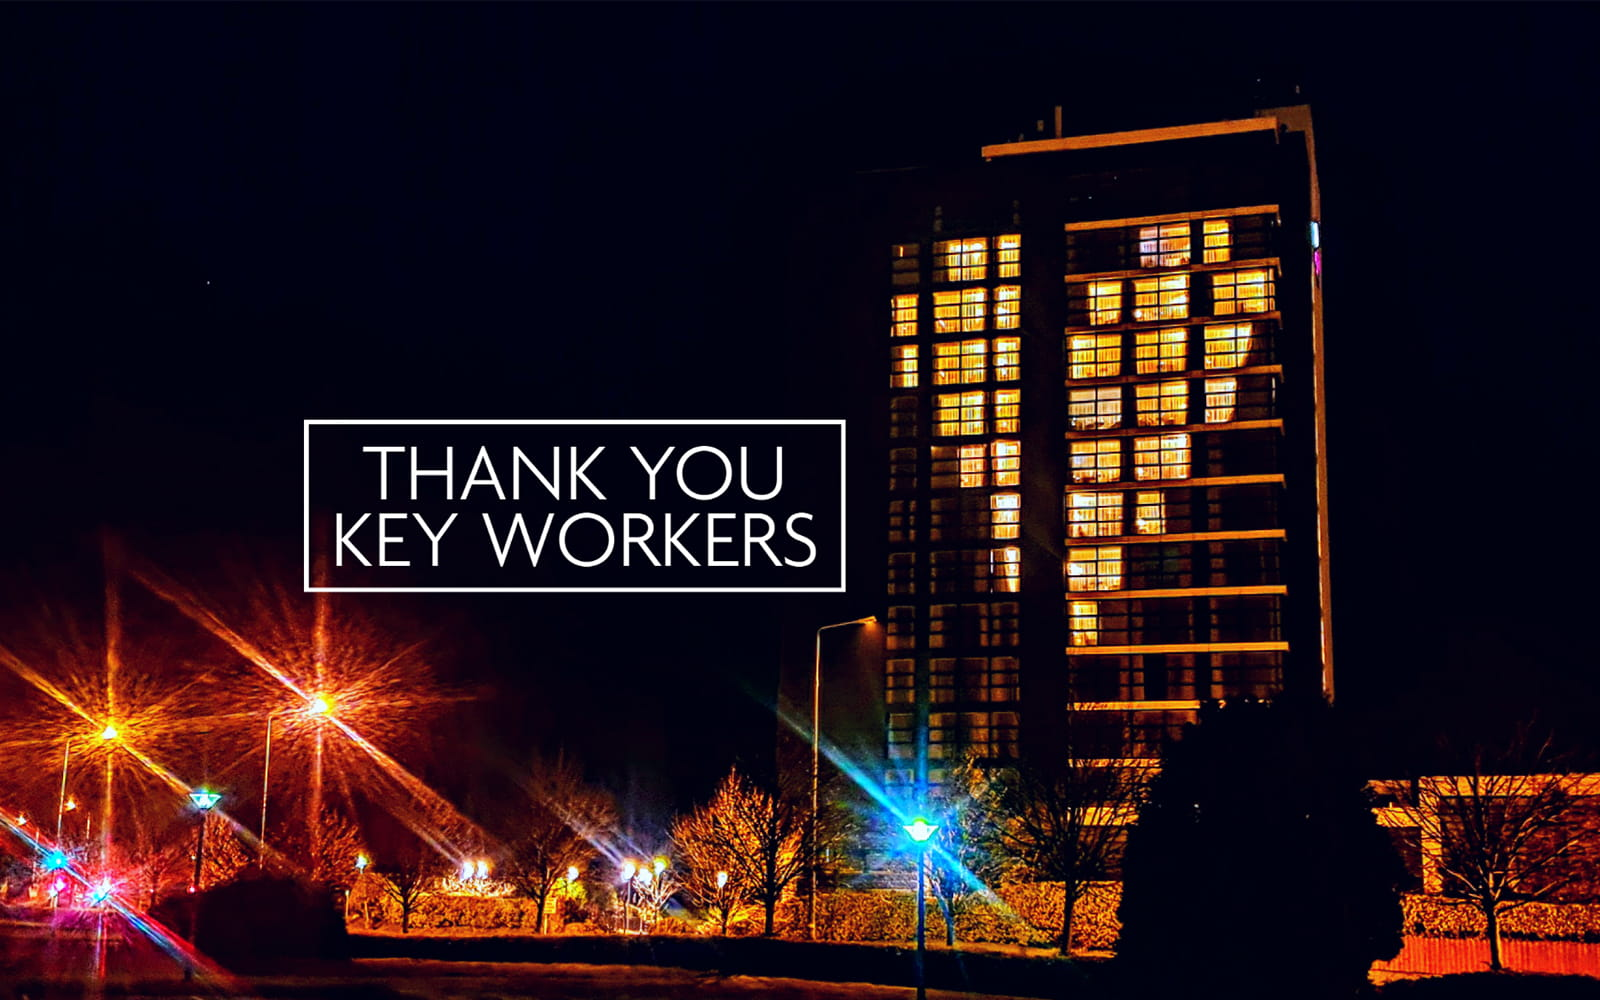 Thank you key workers, Crowne Plaza Hotel Exterior